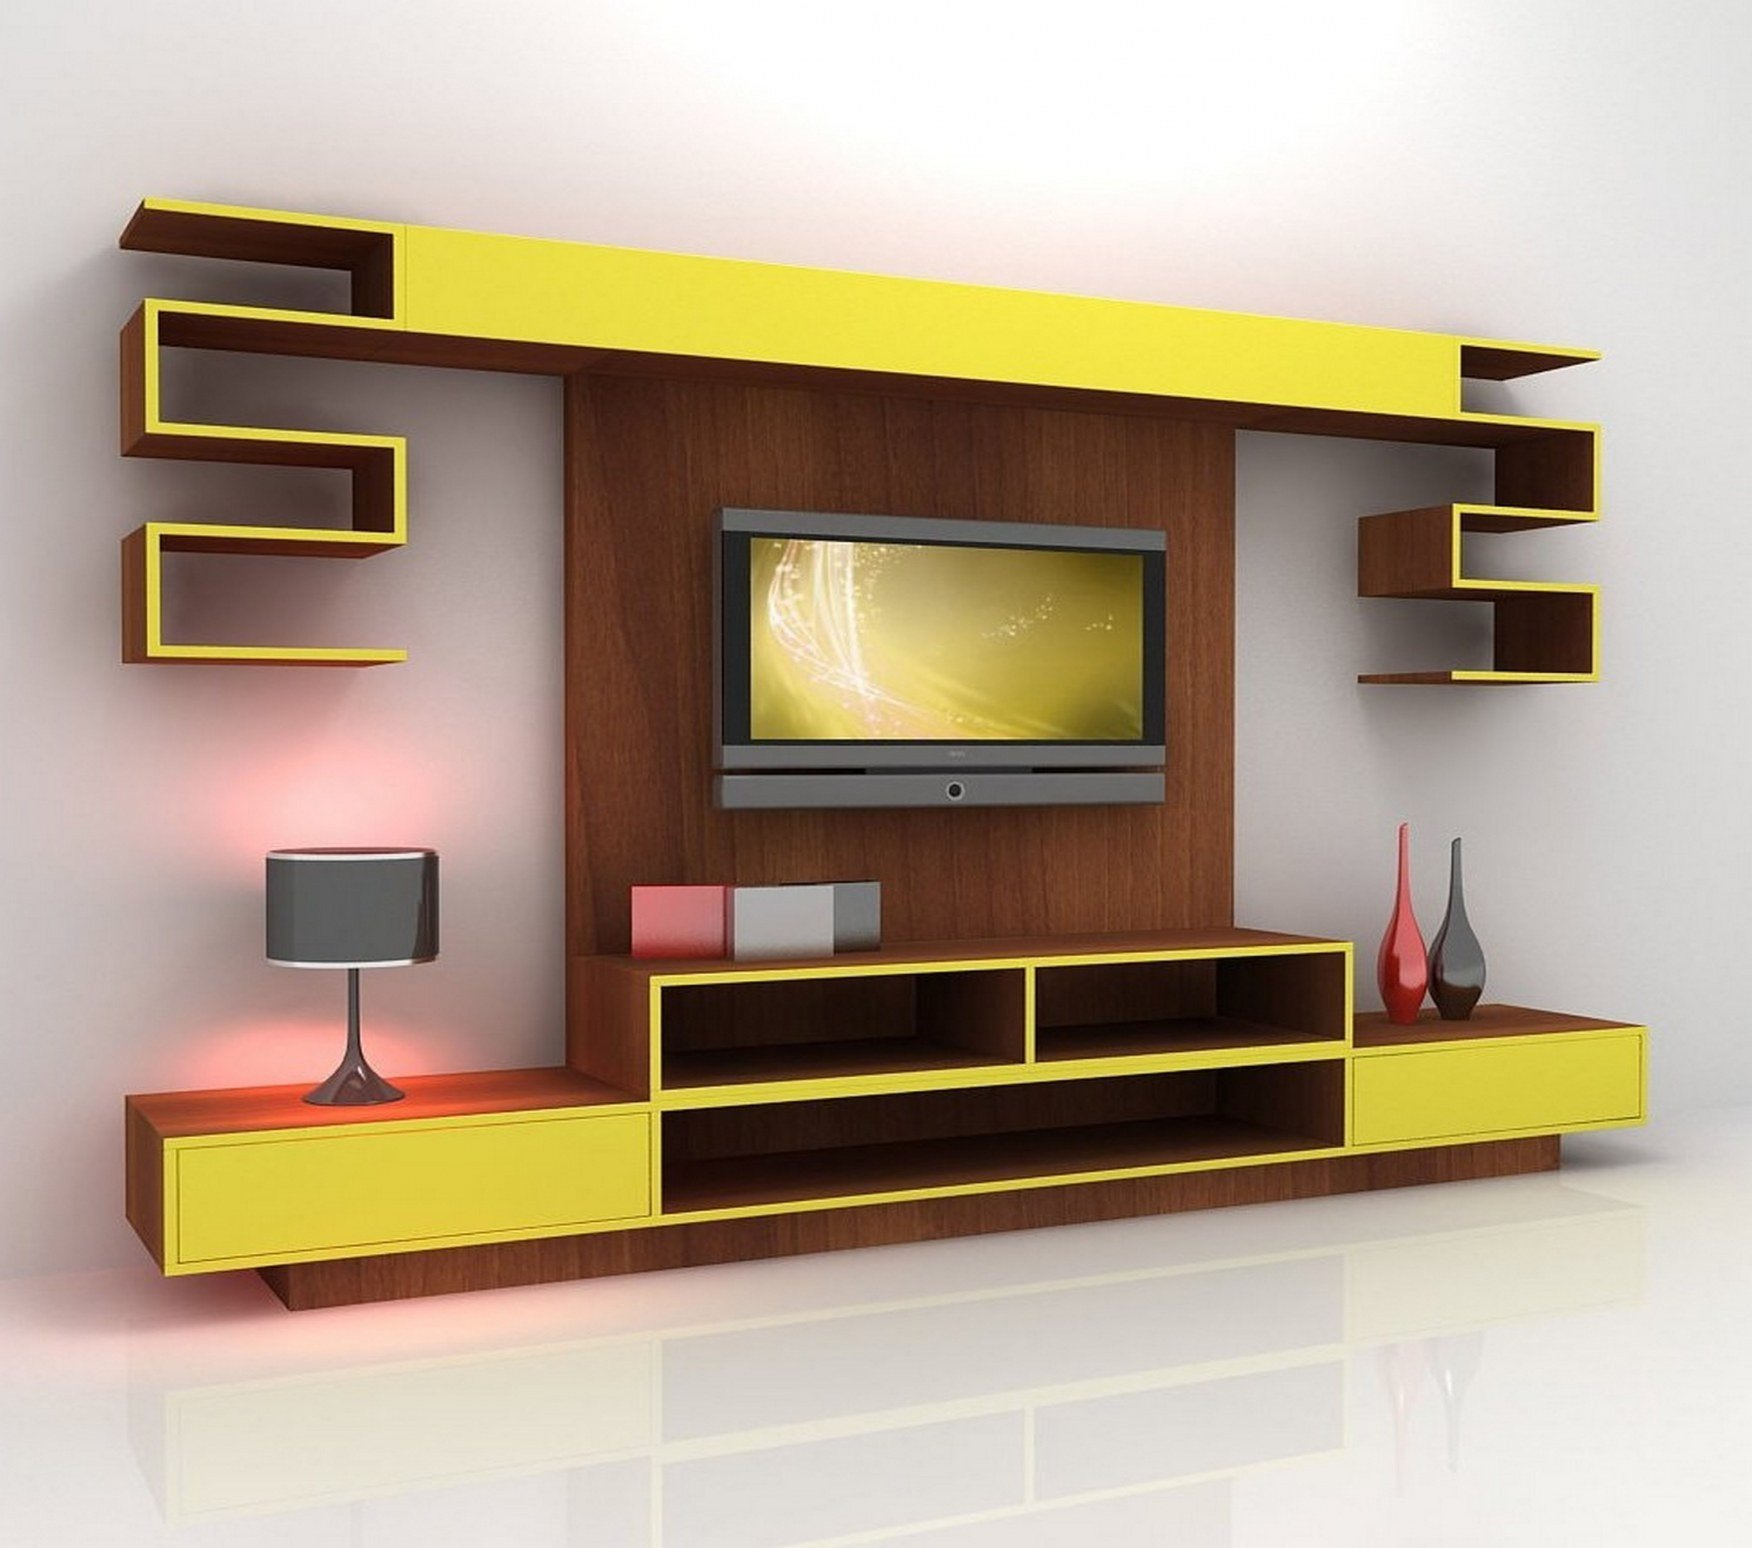 Wall Mounted Tv Ideas Bedroom Beautiful Wall Mounted Tv Ideas Bedroom Simple Decorating Ideas Fancy